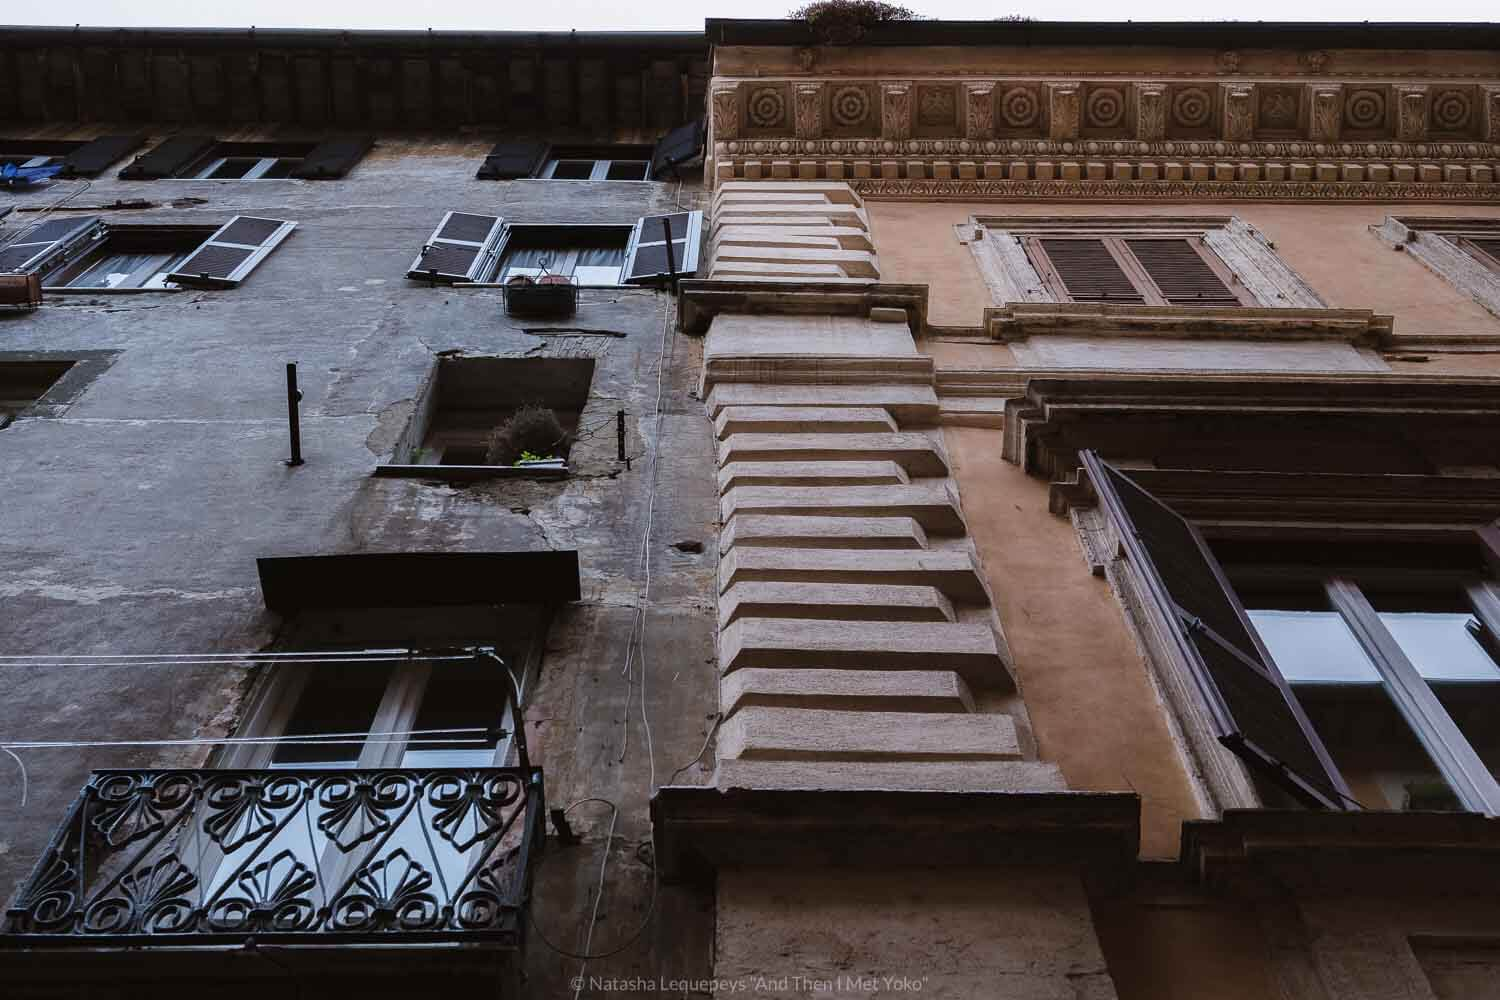 """Juxtaposition of the buildings inside the Jewish Ghetto and directly outside of it, Rome. Travel photography and guide by © Natasha Lequepeys for """"And Then I Met Yoko"""". #rome #jewishghettorome #italy #fujifilm #travelphotography"""